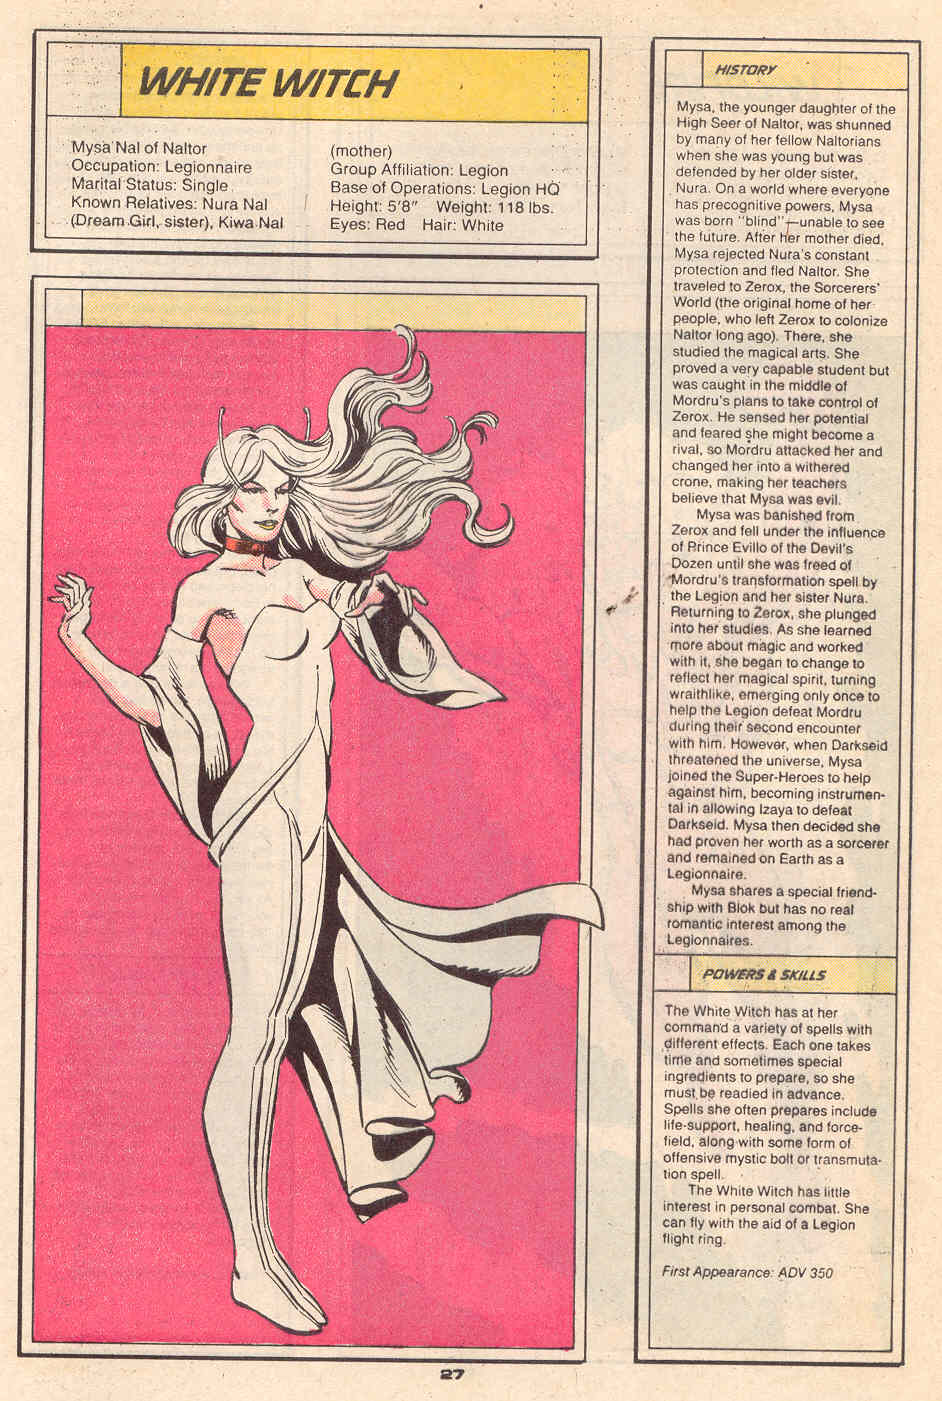 White Witch by Jose Villarrubia and Karl Kesel - Who's Who in the Legion of Super-Heroes #7